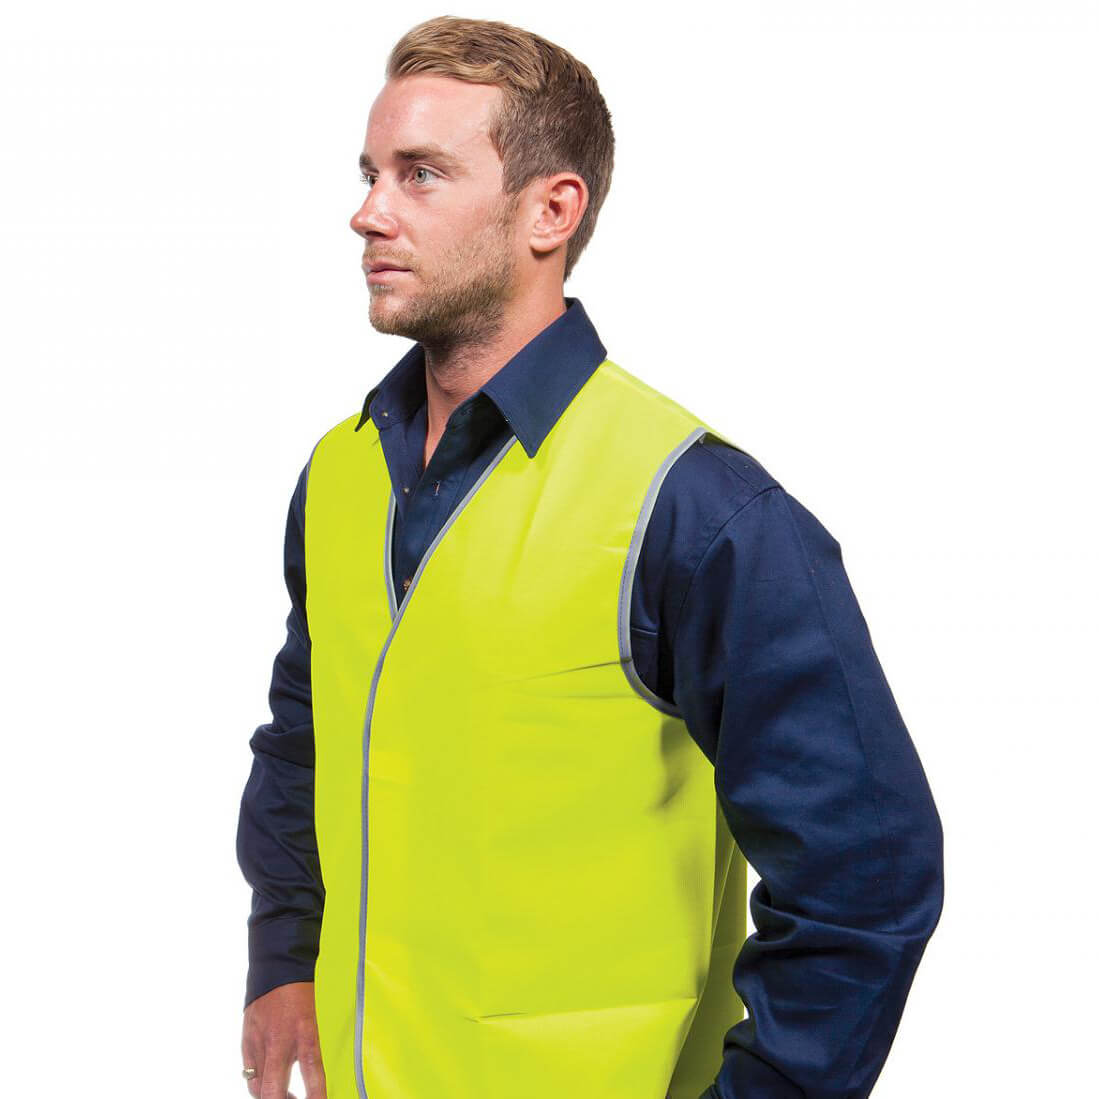 Force360 Hi Vis Safety Vest Yellow